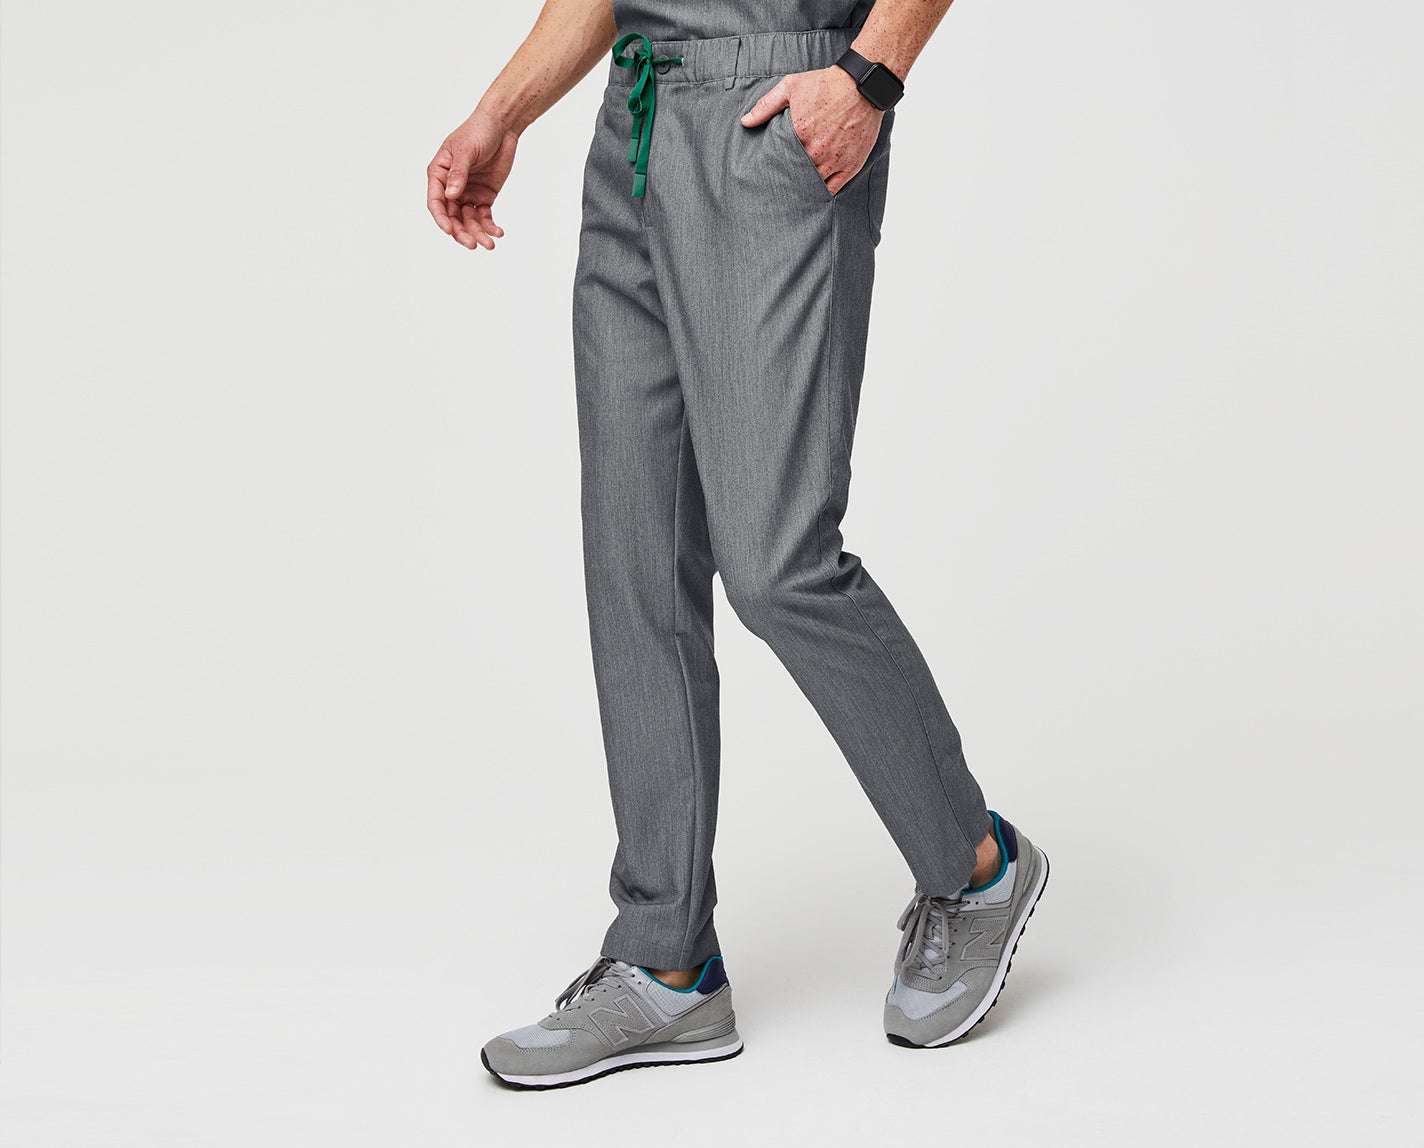 Whether you're working or working out. The Nazca is athletically inspired, designed with eight pockets, a slim fit and minimal details for an always-professional look.